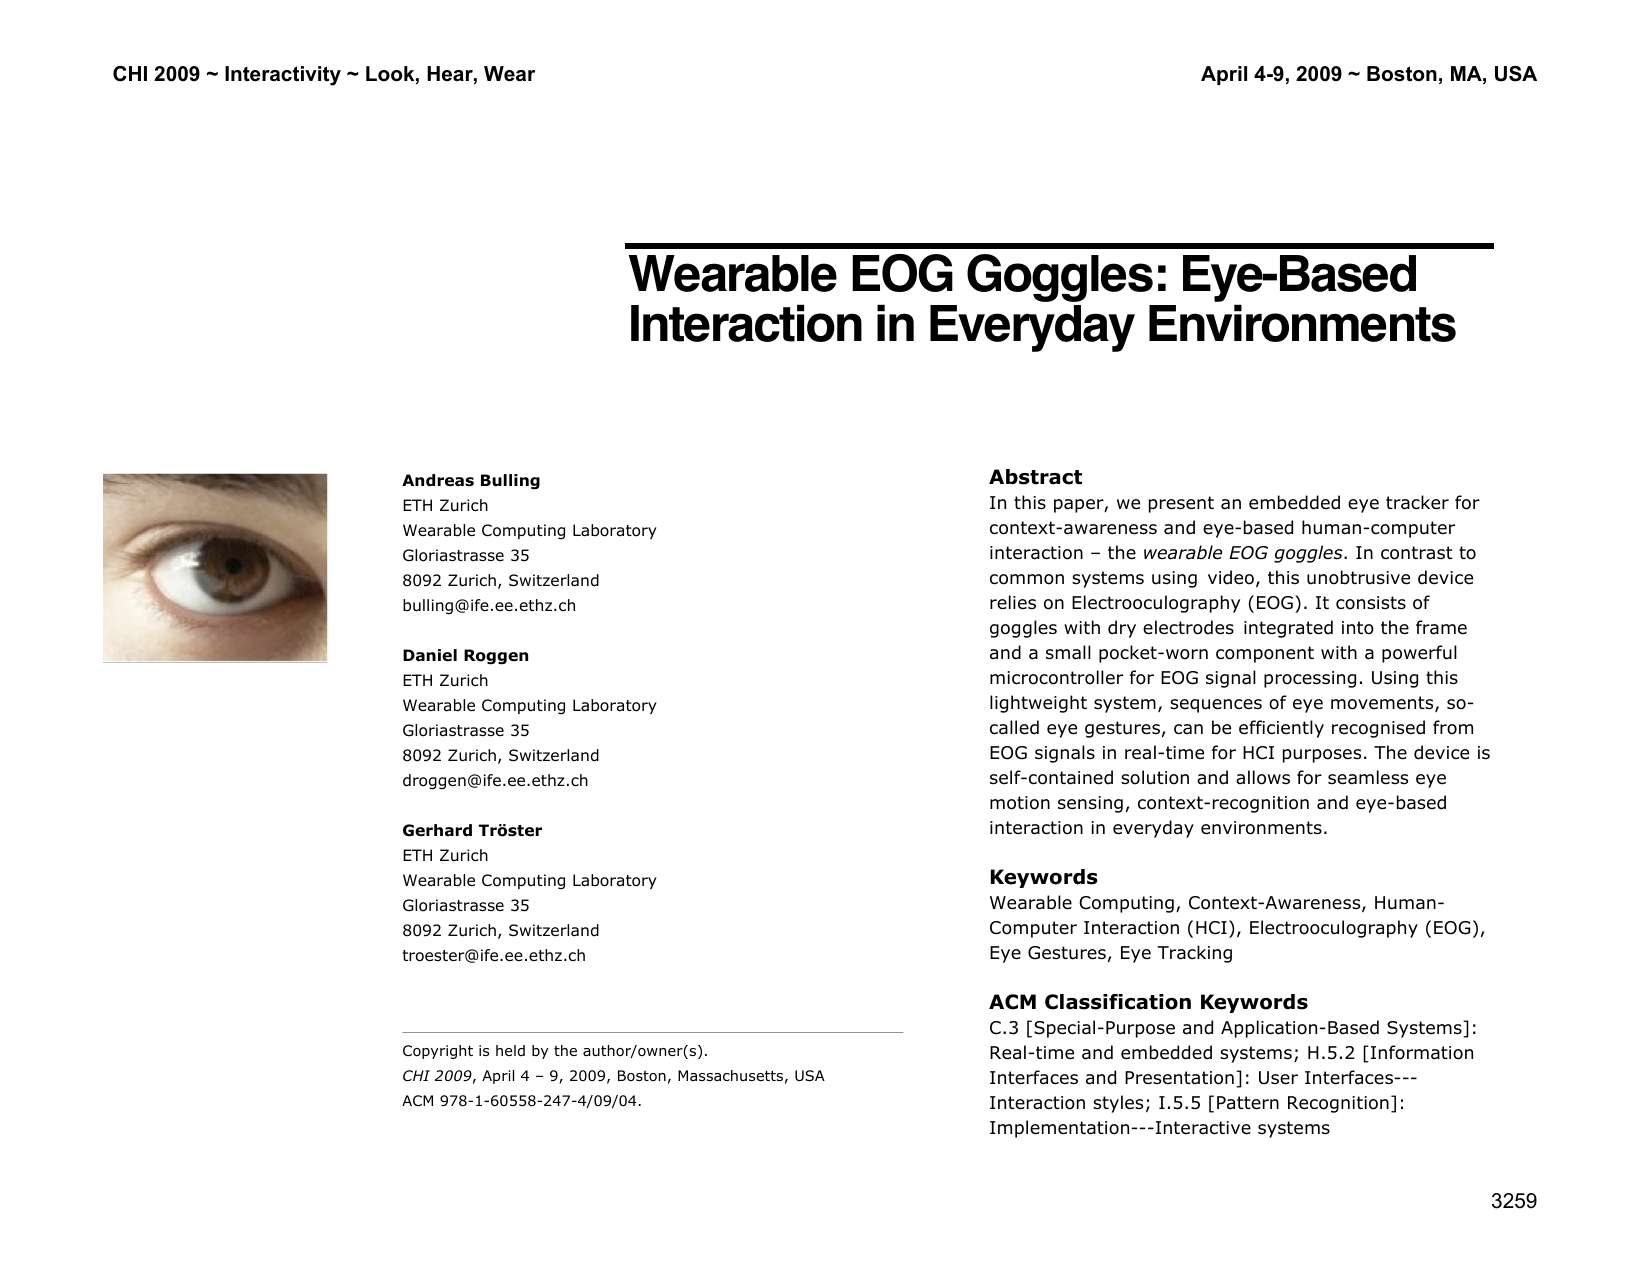 Wearable EOG Goggles: Eye-Based Interaction in Everyday Environments